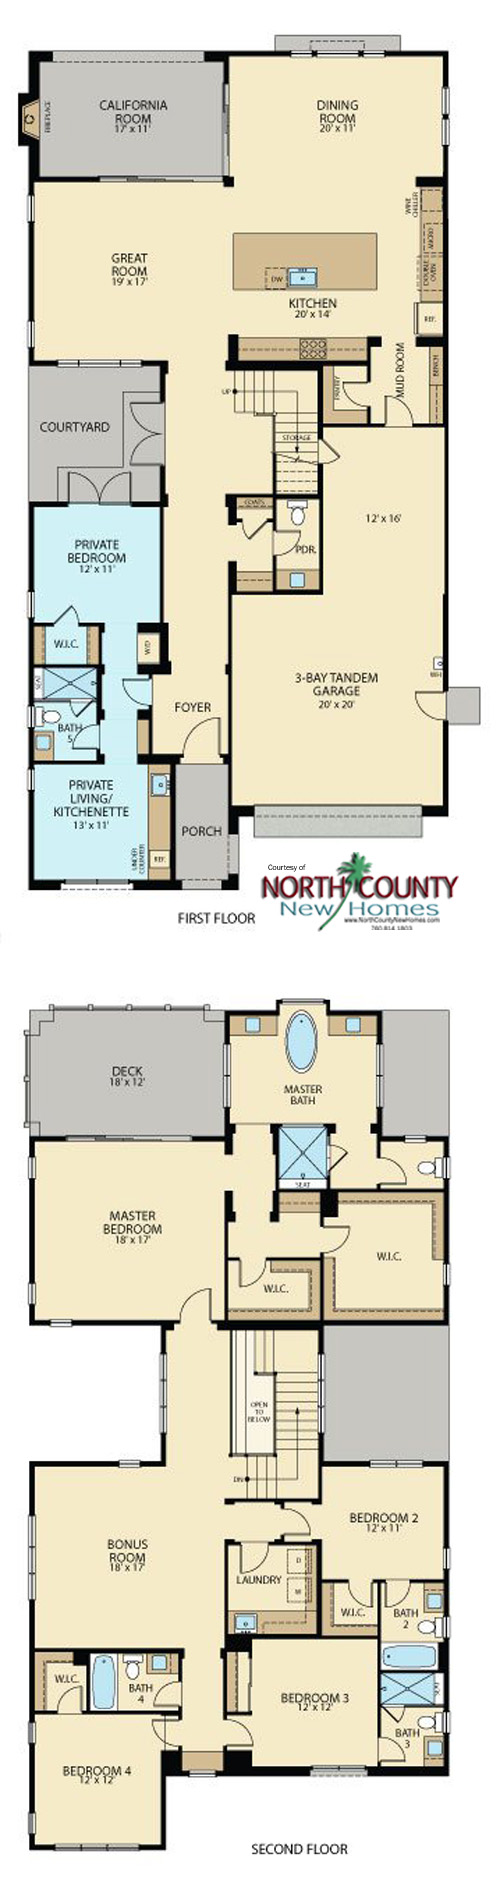 New homes in Carmel Valley, San Diego in Pacific Highlands Ranch at Sterling. Sterling new home floor plans. Residence 3